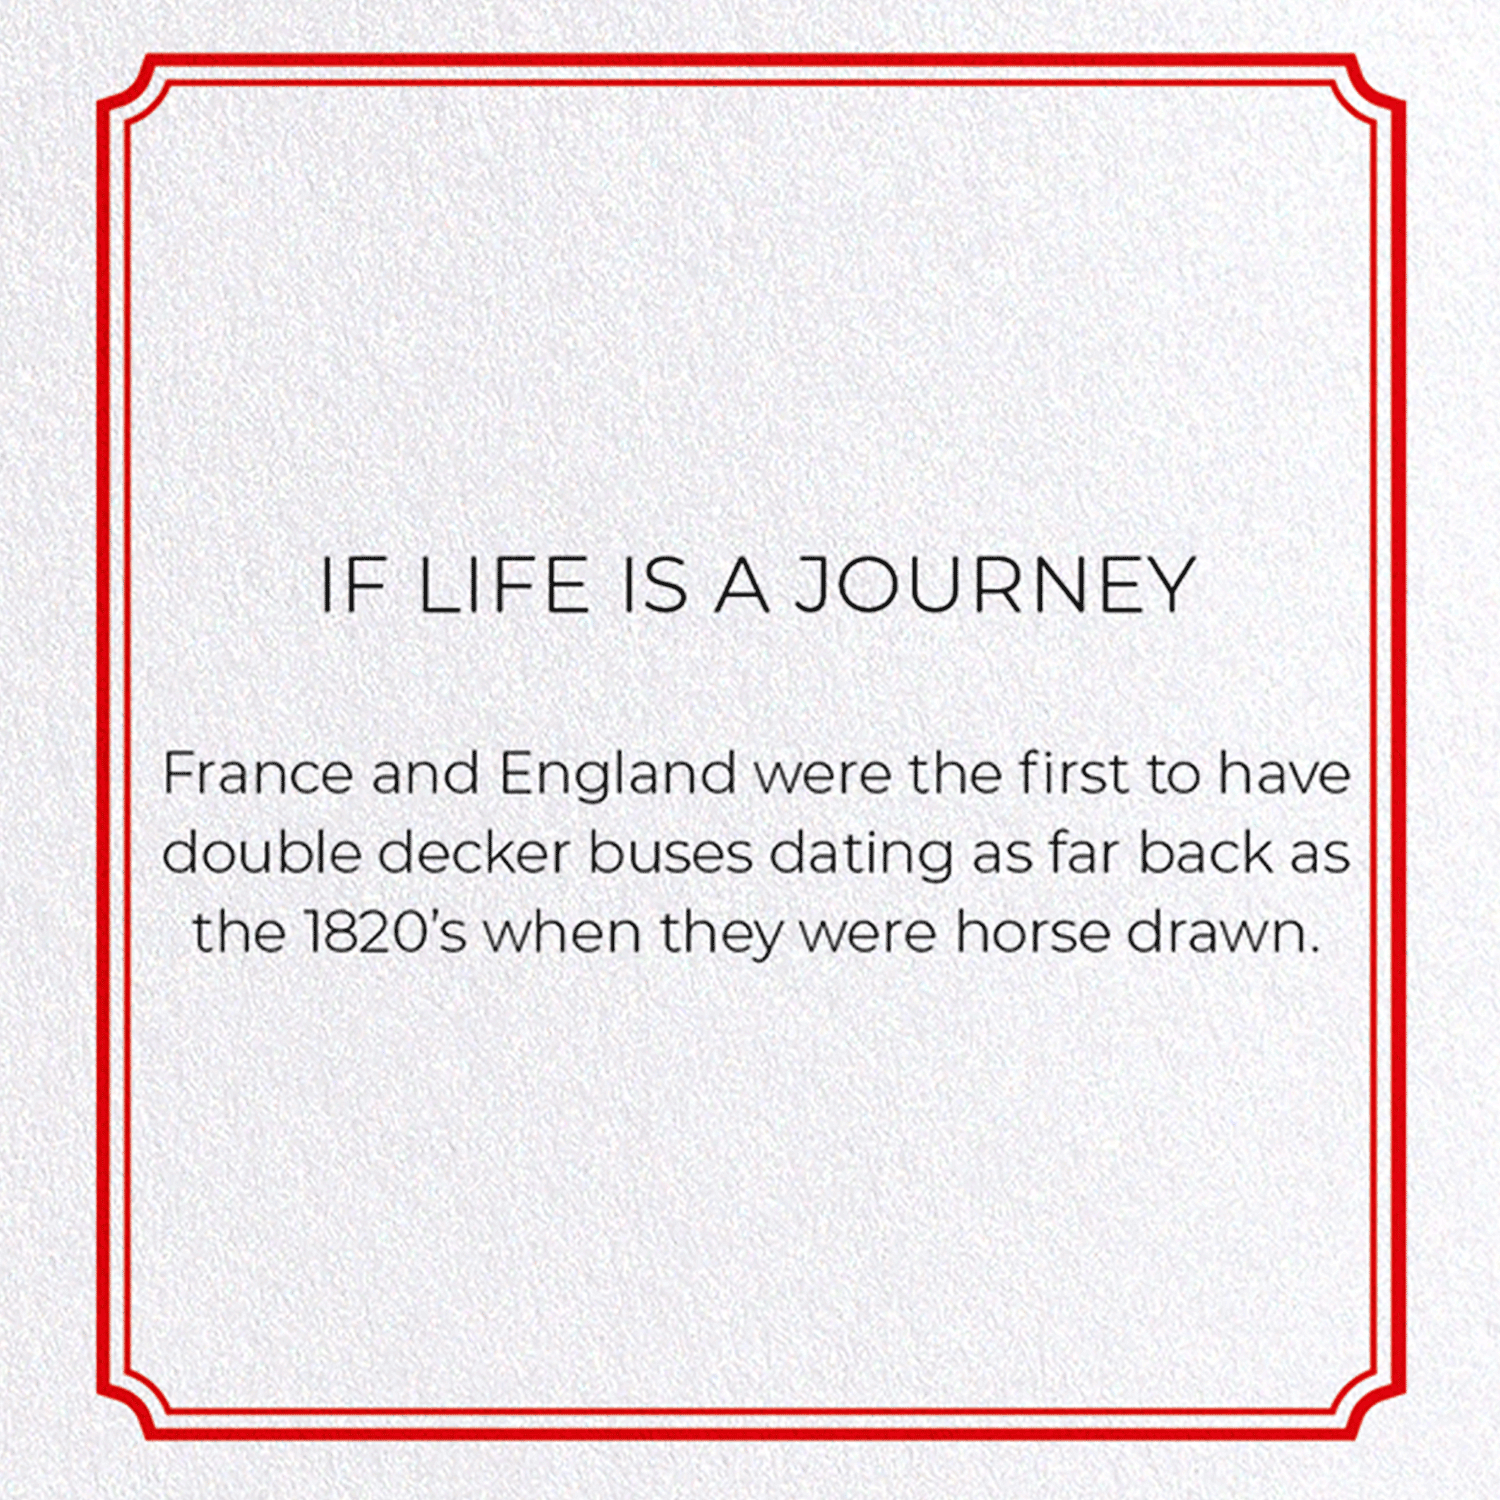 IF LIFE IS A JOURNEY